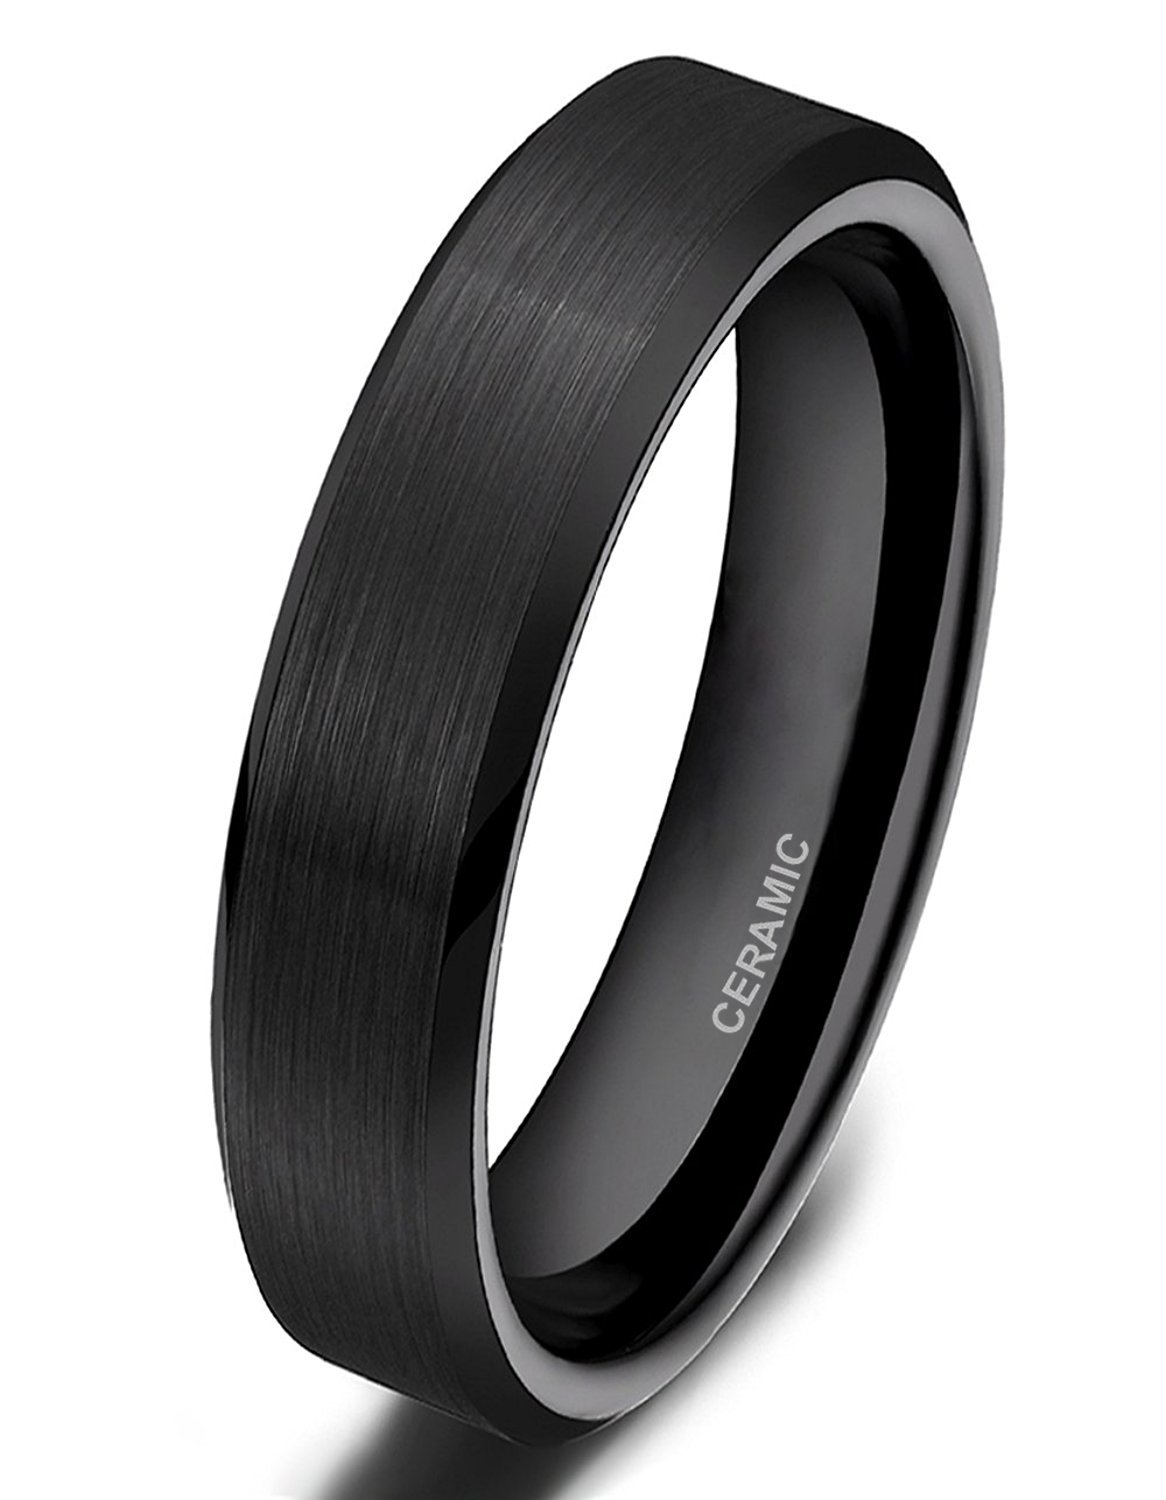 SOMEN TUNGSTEN 4mm 6mm 8mm Black Ceramic Rings Brushed Comfort Fit Wedding Band for Men Women Size 4-14